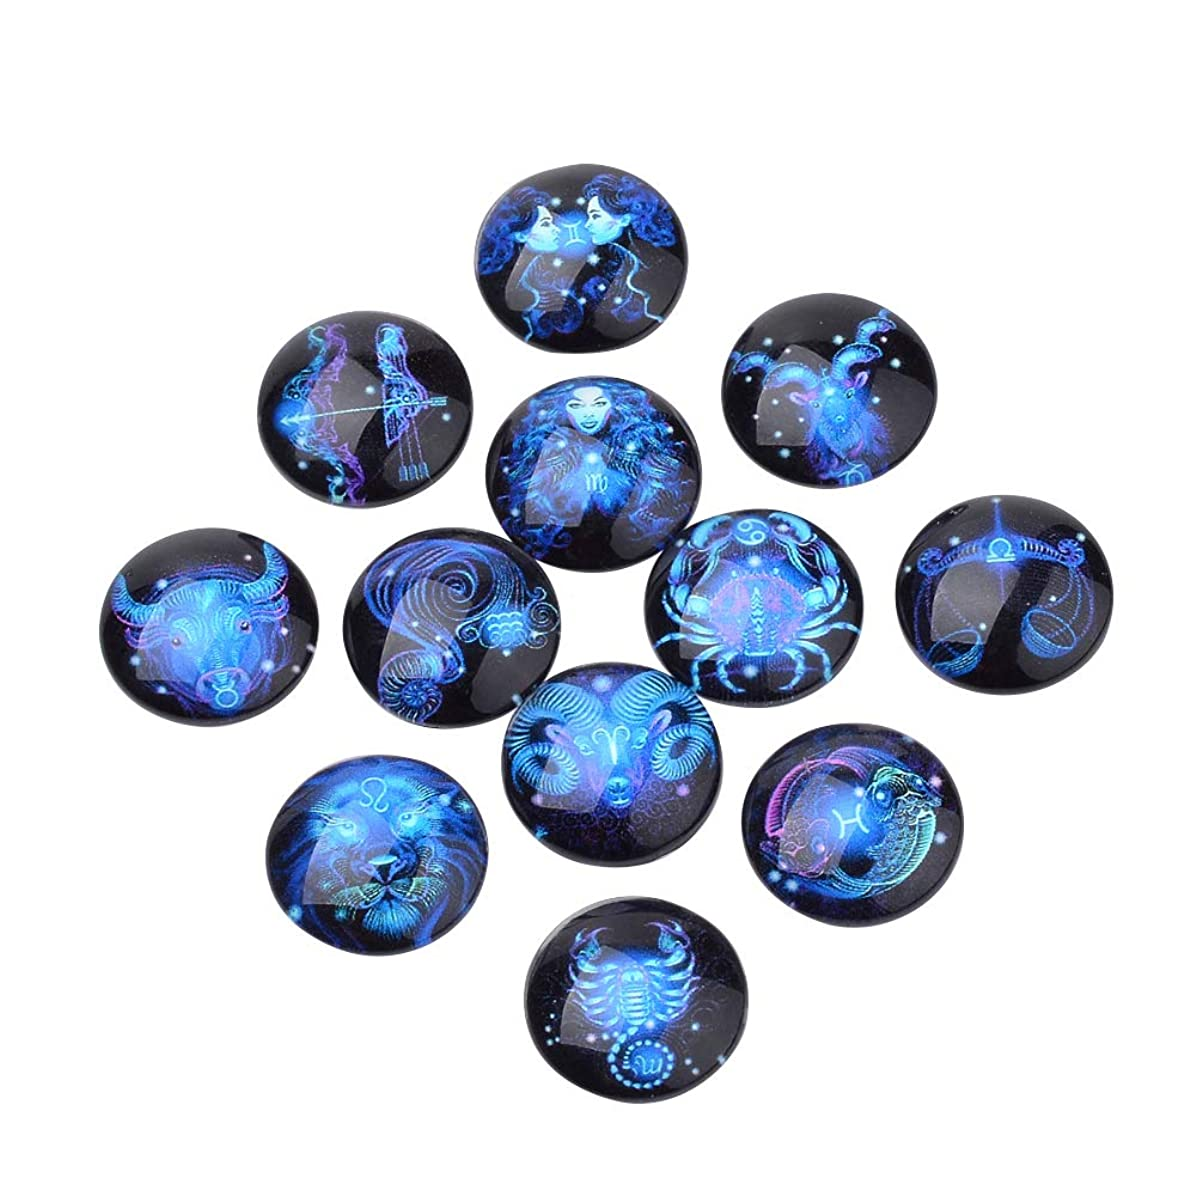 ARRICRAFT 20pcs Flatback Glass Cabochons Constellation/Zodiac Sign Pattern Dome/Half Round RosyBrown for DIY Projects Craft Jewelry Making